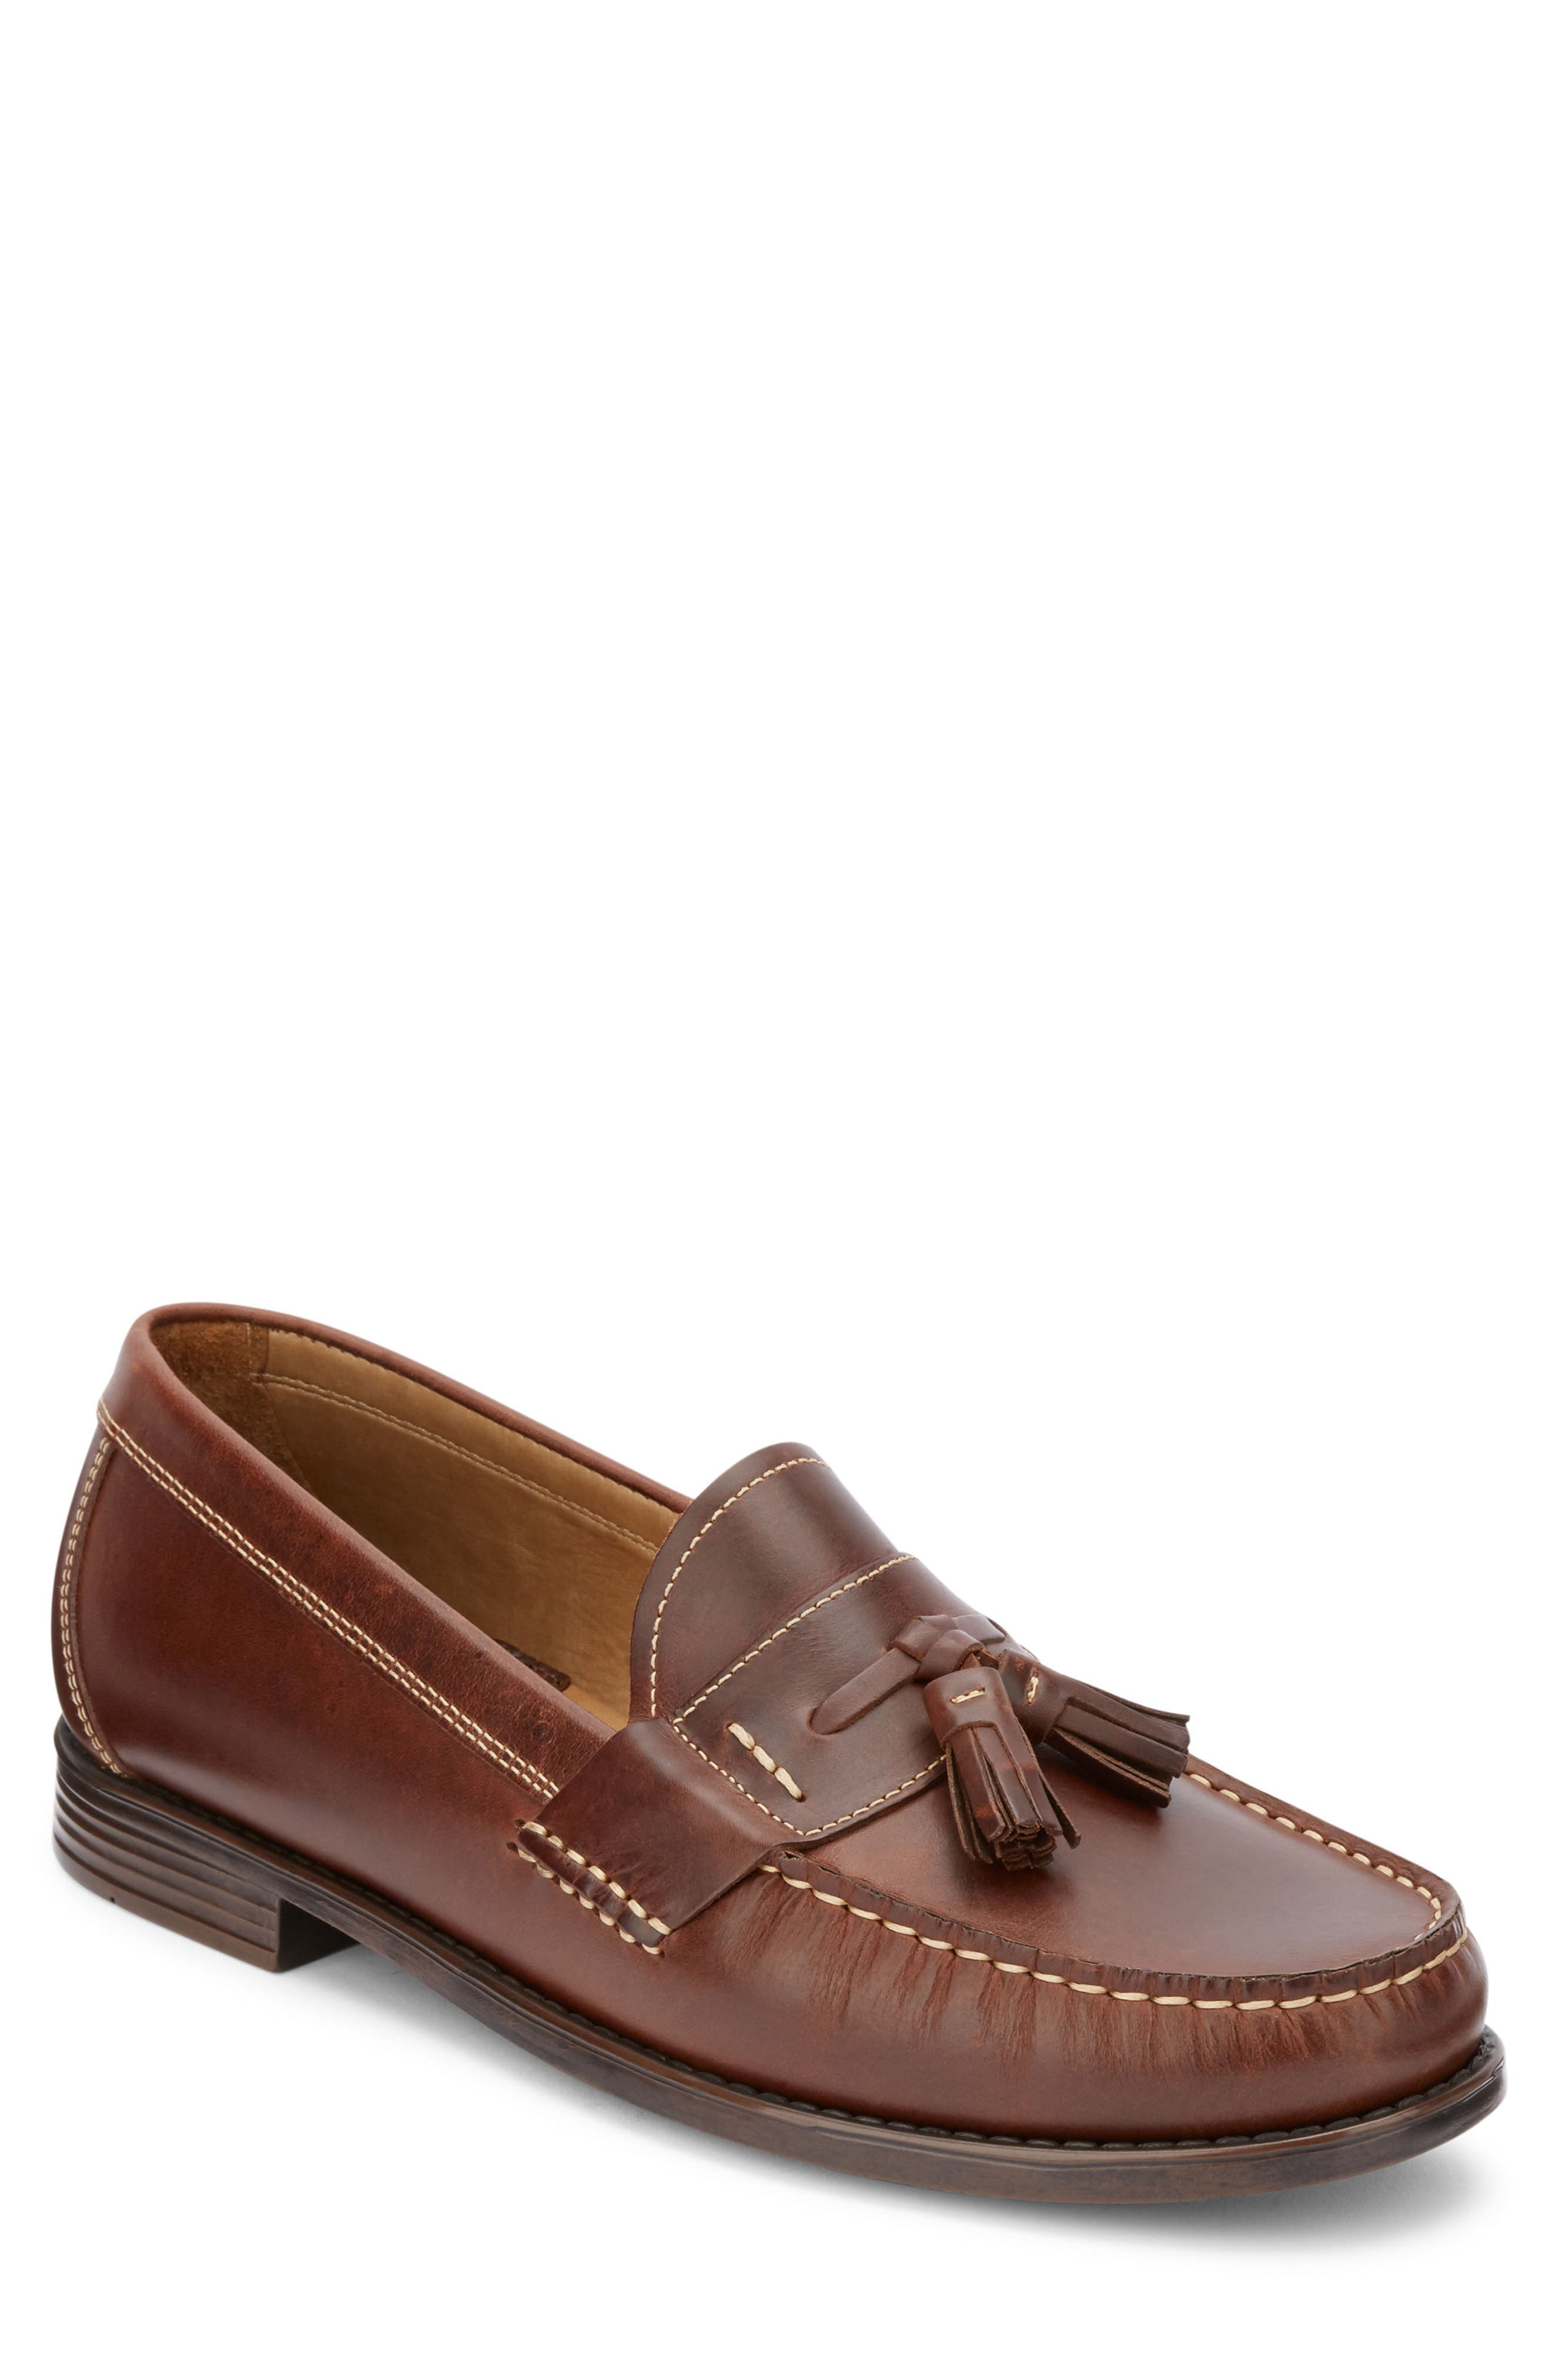 Wallace Tassel Loafer,                         Main,                         color, DARK BROWN LEATHER